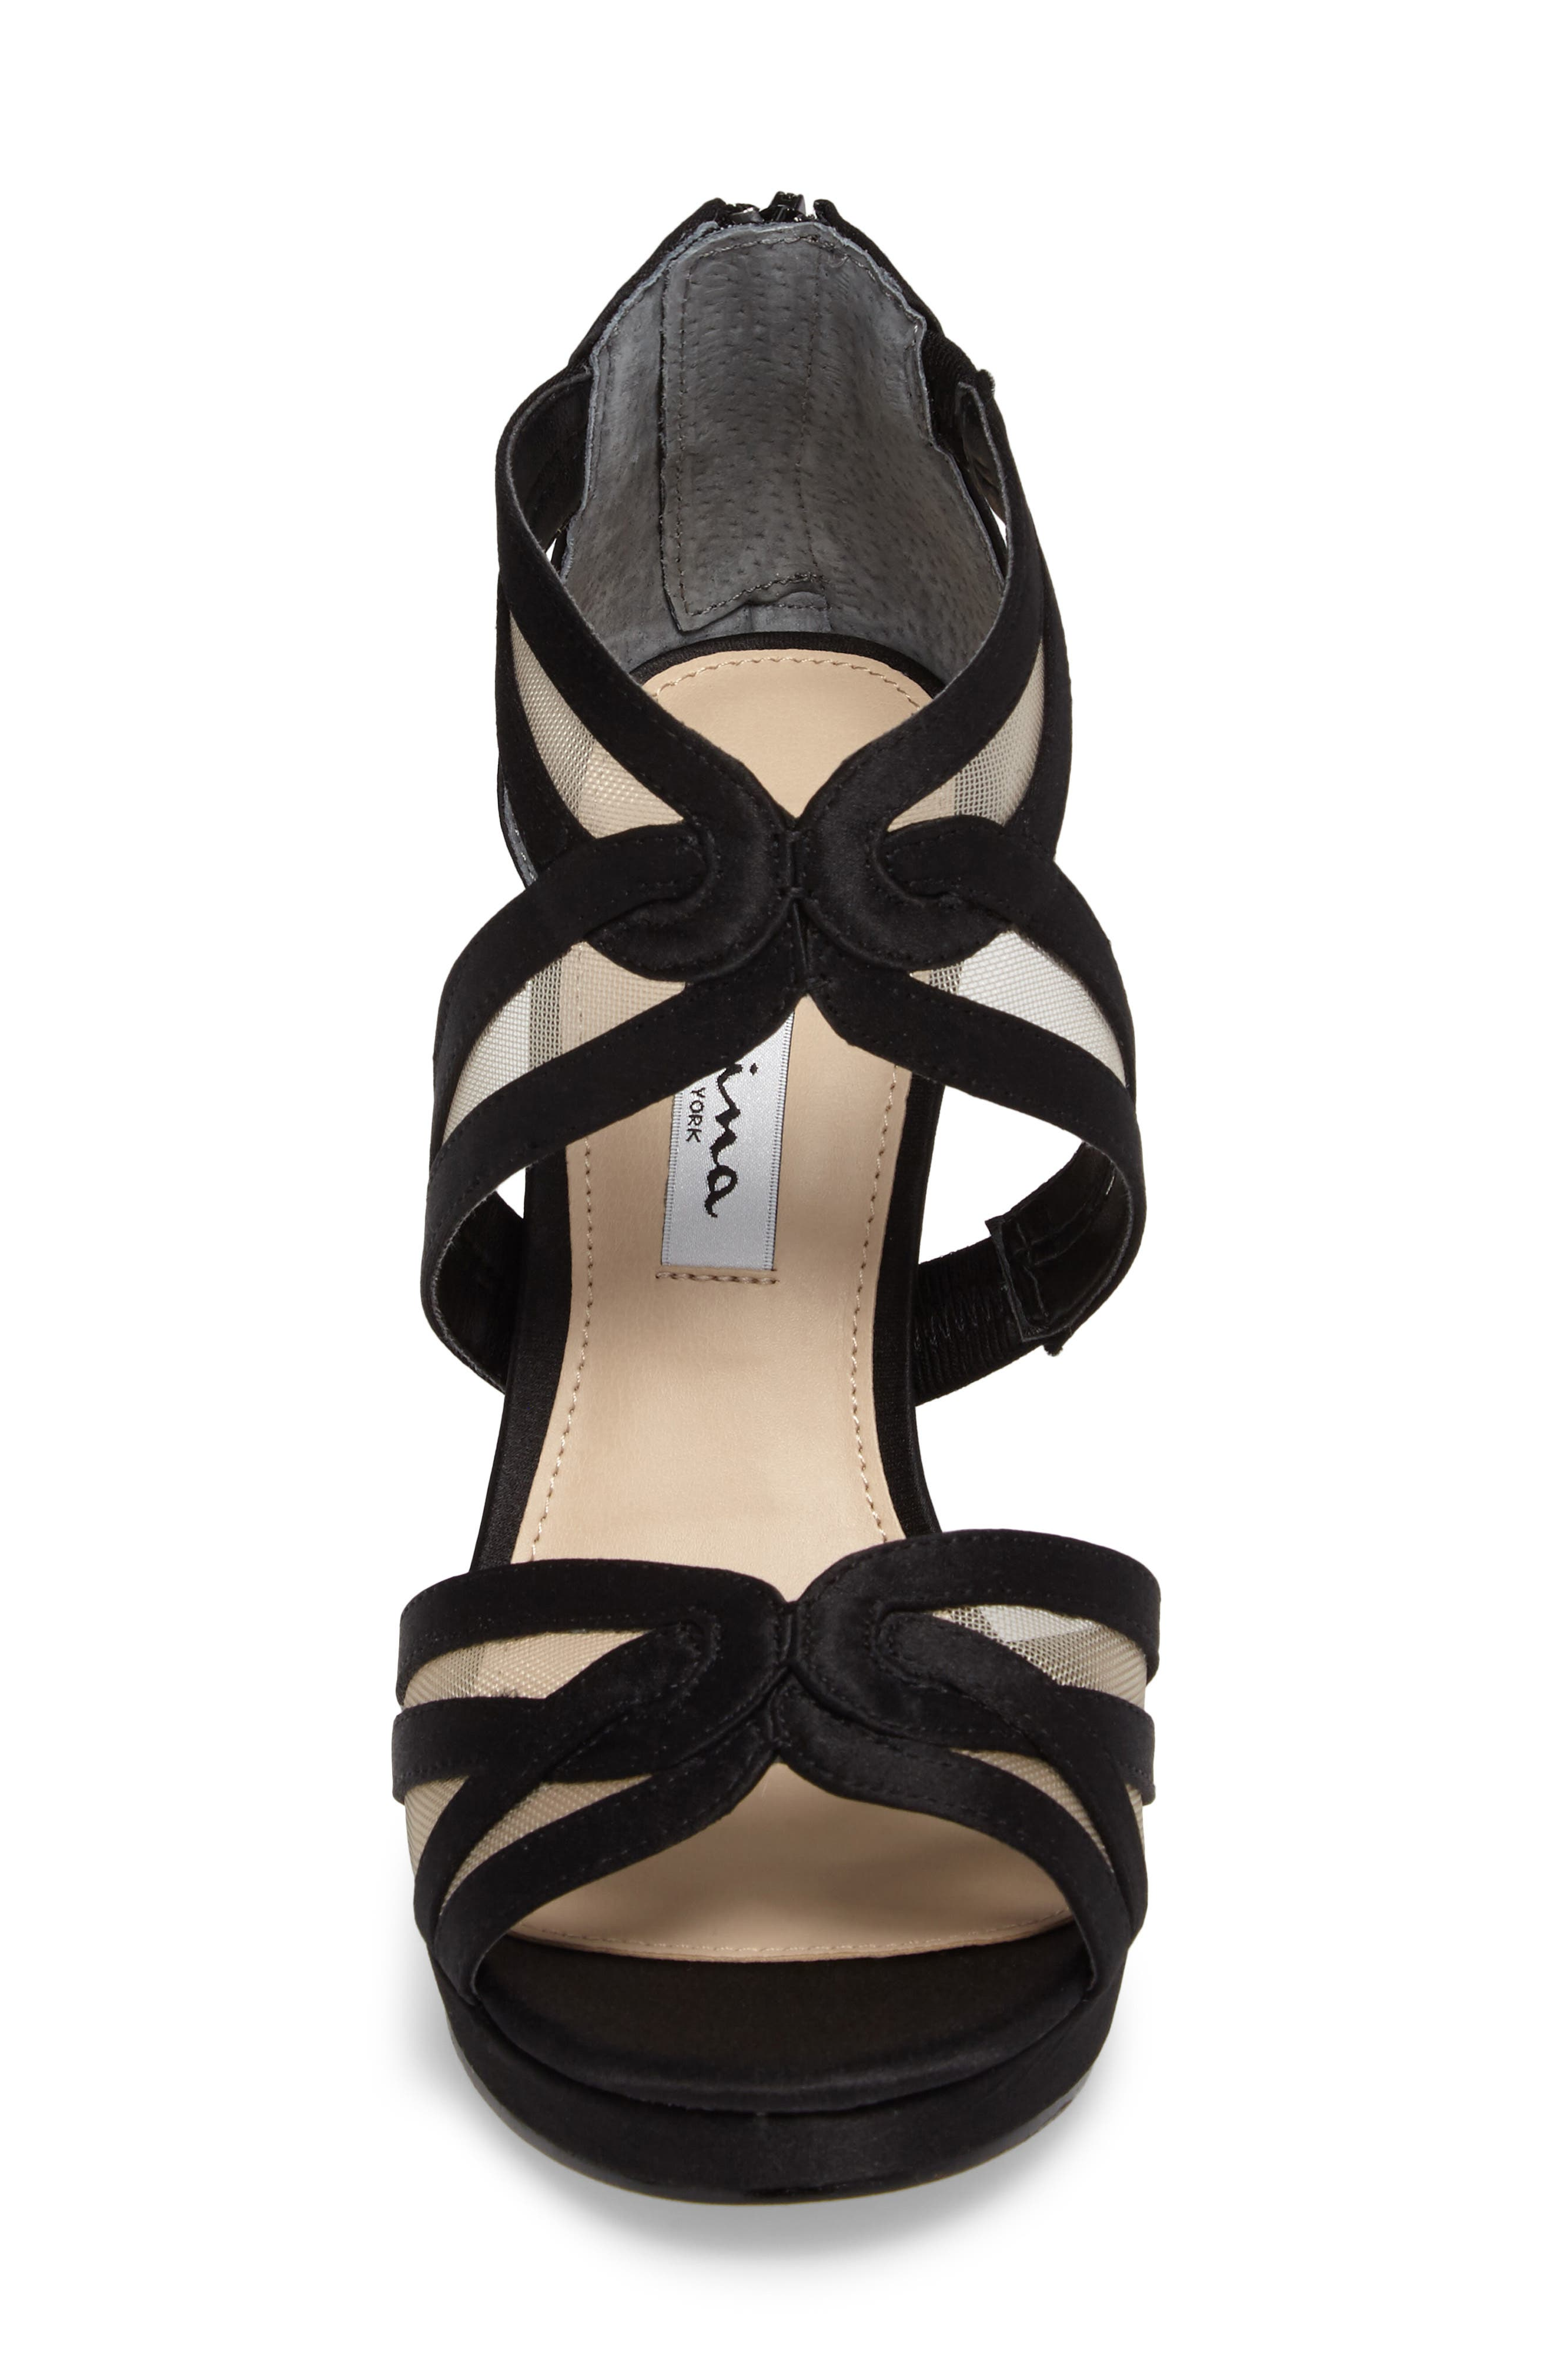 Fayette Strappy Sandal,                             Alternate thumbnail 4, color,                             003